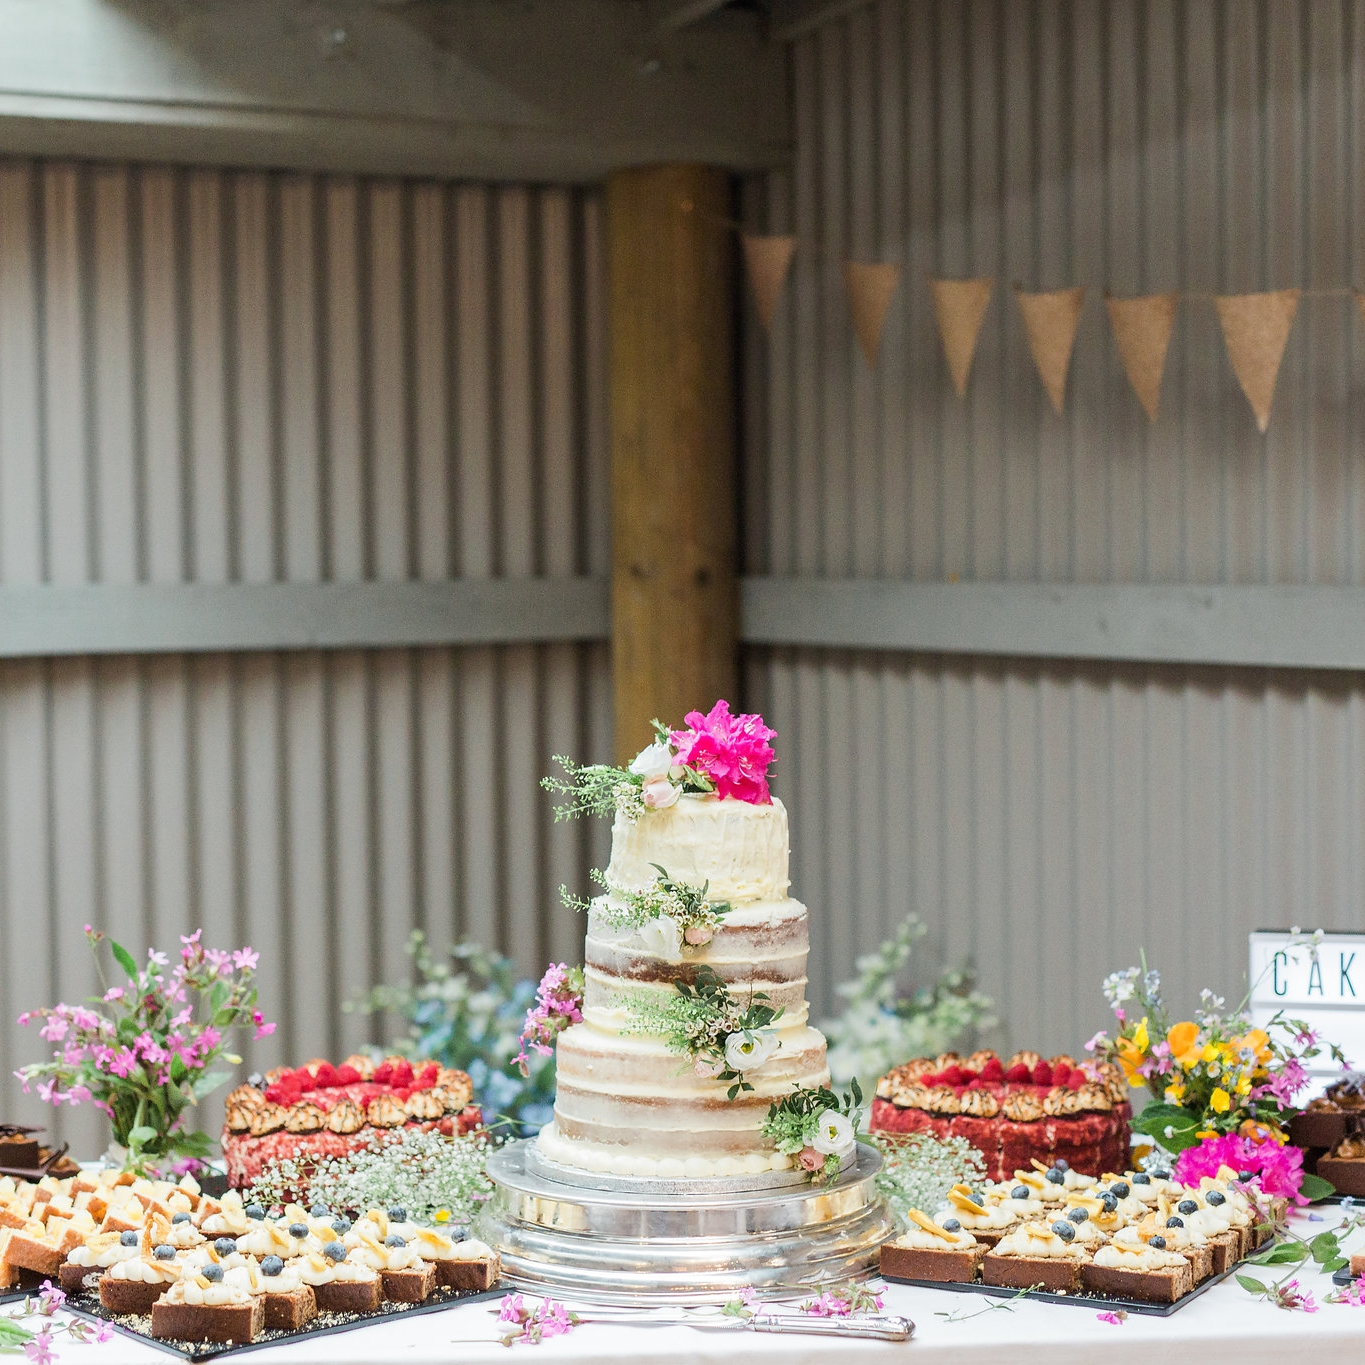 Cakes   | Rosewood Cakes | Three Sister Bake | Kimmy's Cakes | Suzanne Esper | Happy Hills Cakes |